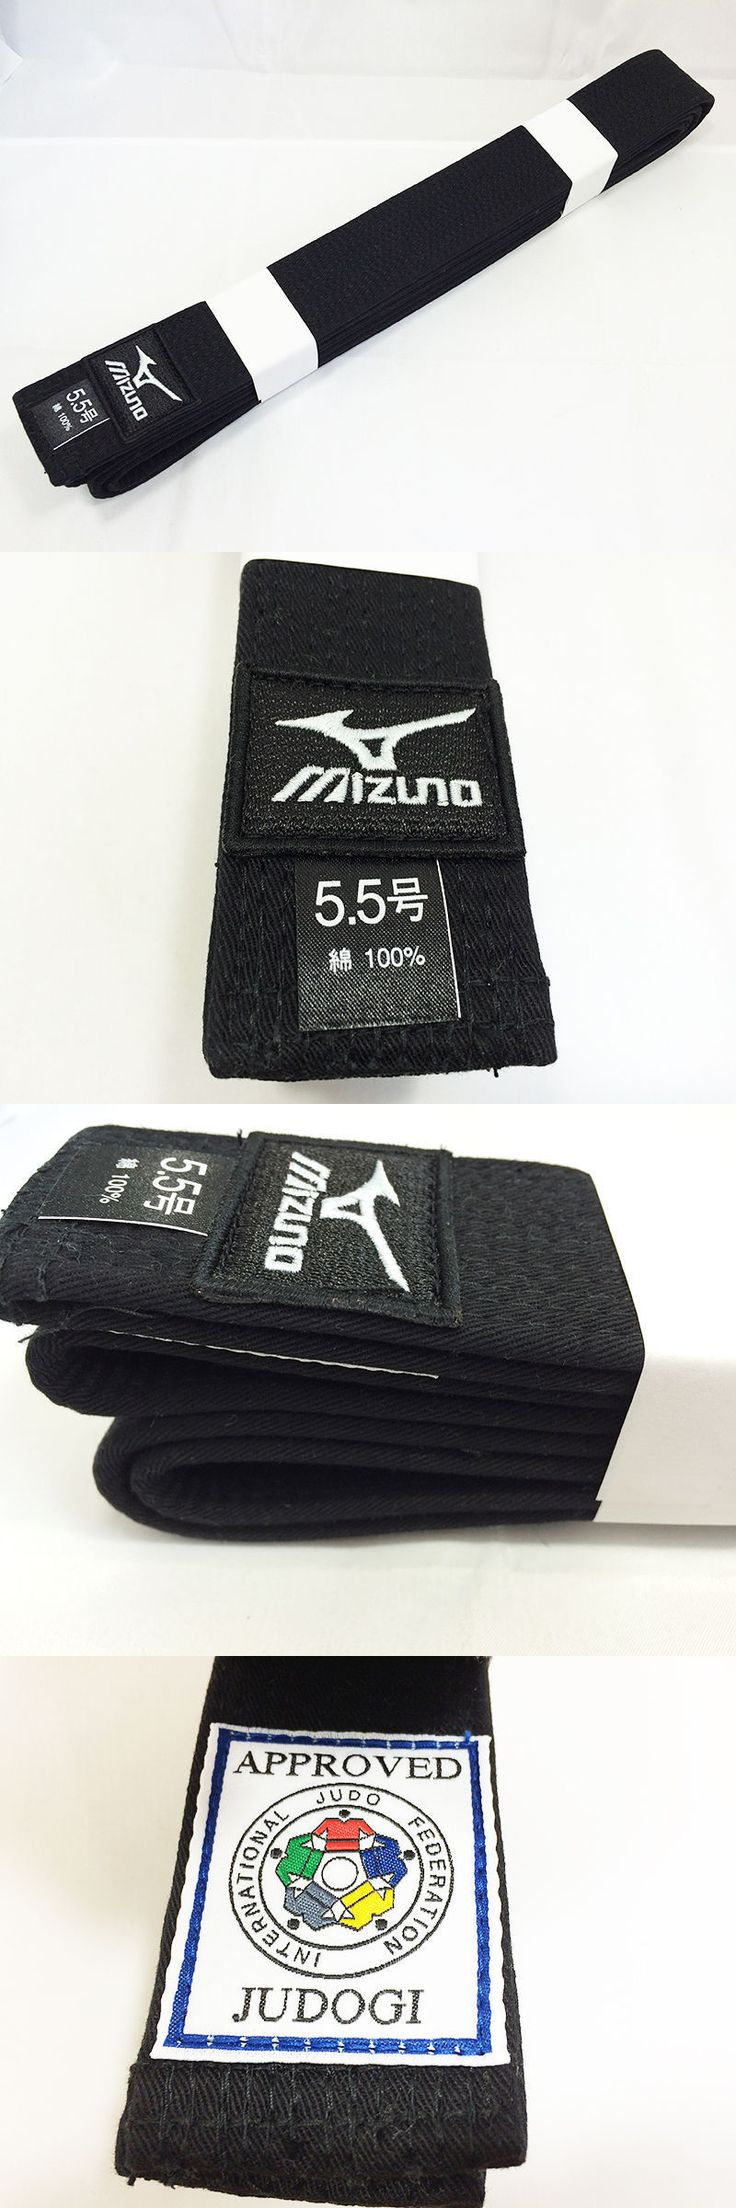 Belts and Sashes 73981: Mizuno Judo Judogi Black Belt Kuro Obi Ijf Official Patch Model From Japan BUY IT NOW ONLY: $54.0